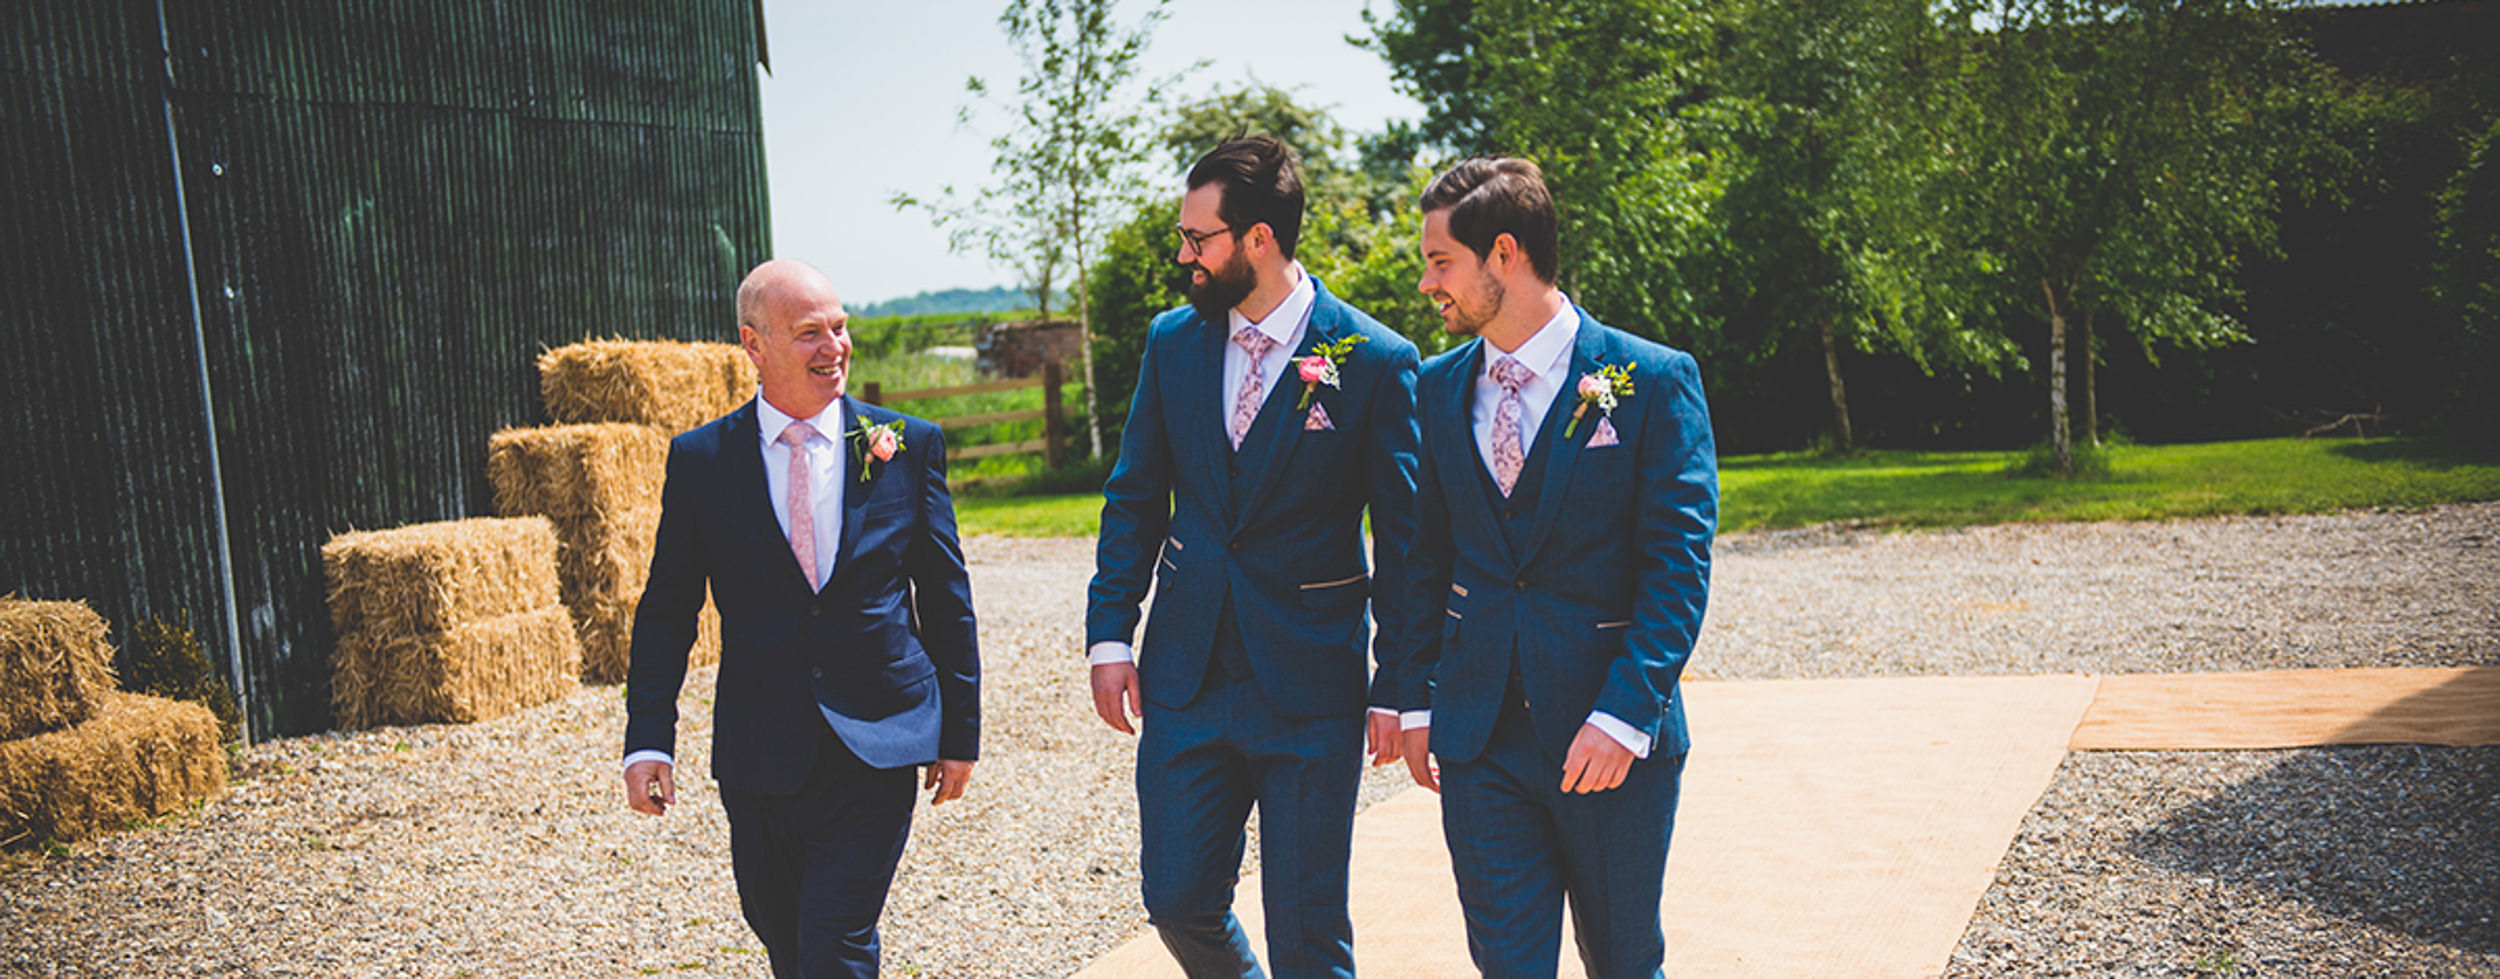 East-Yorkshire-Wedding-Photographer-The-Barns-Weddings-Goole-Hull-Abraham-Photography-02